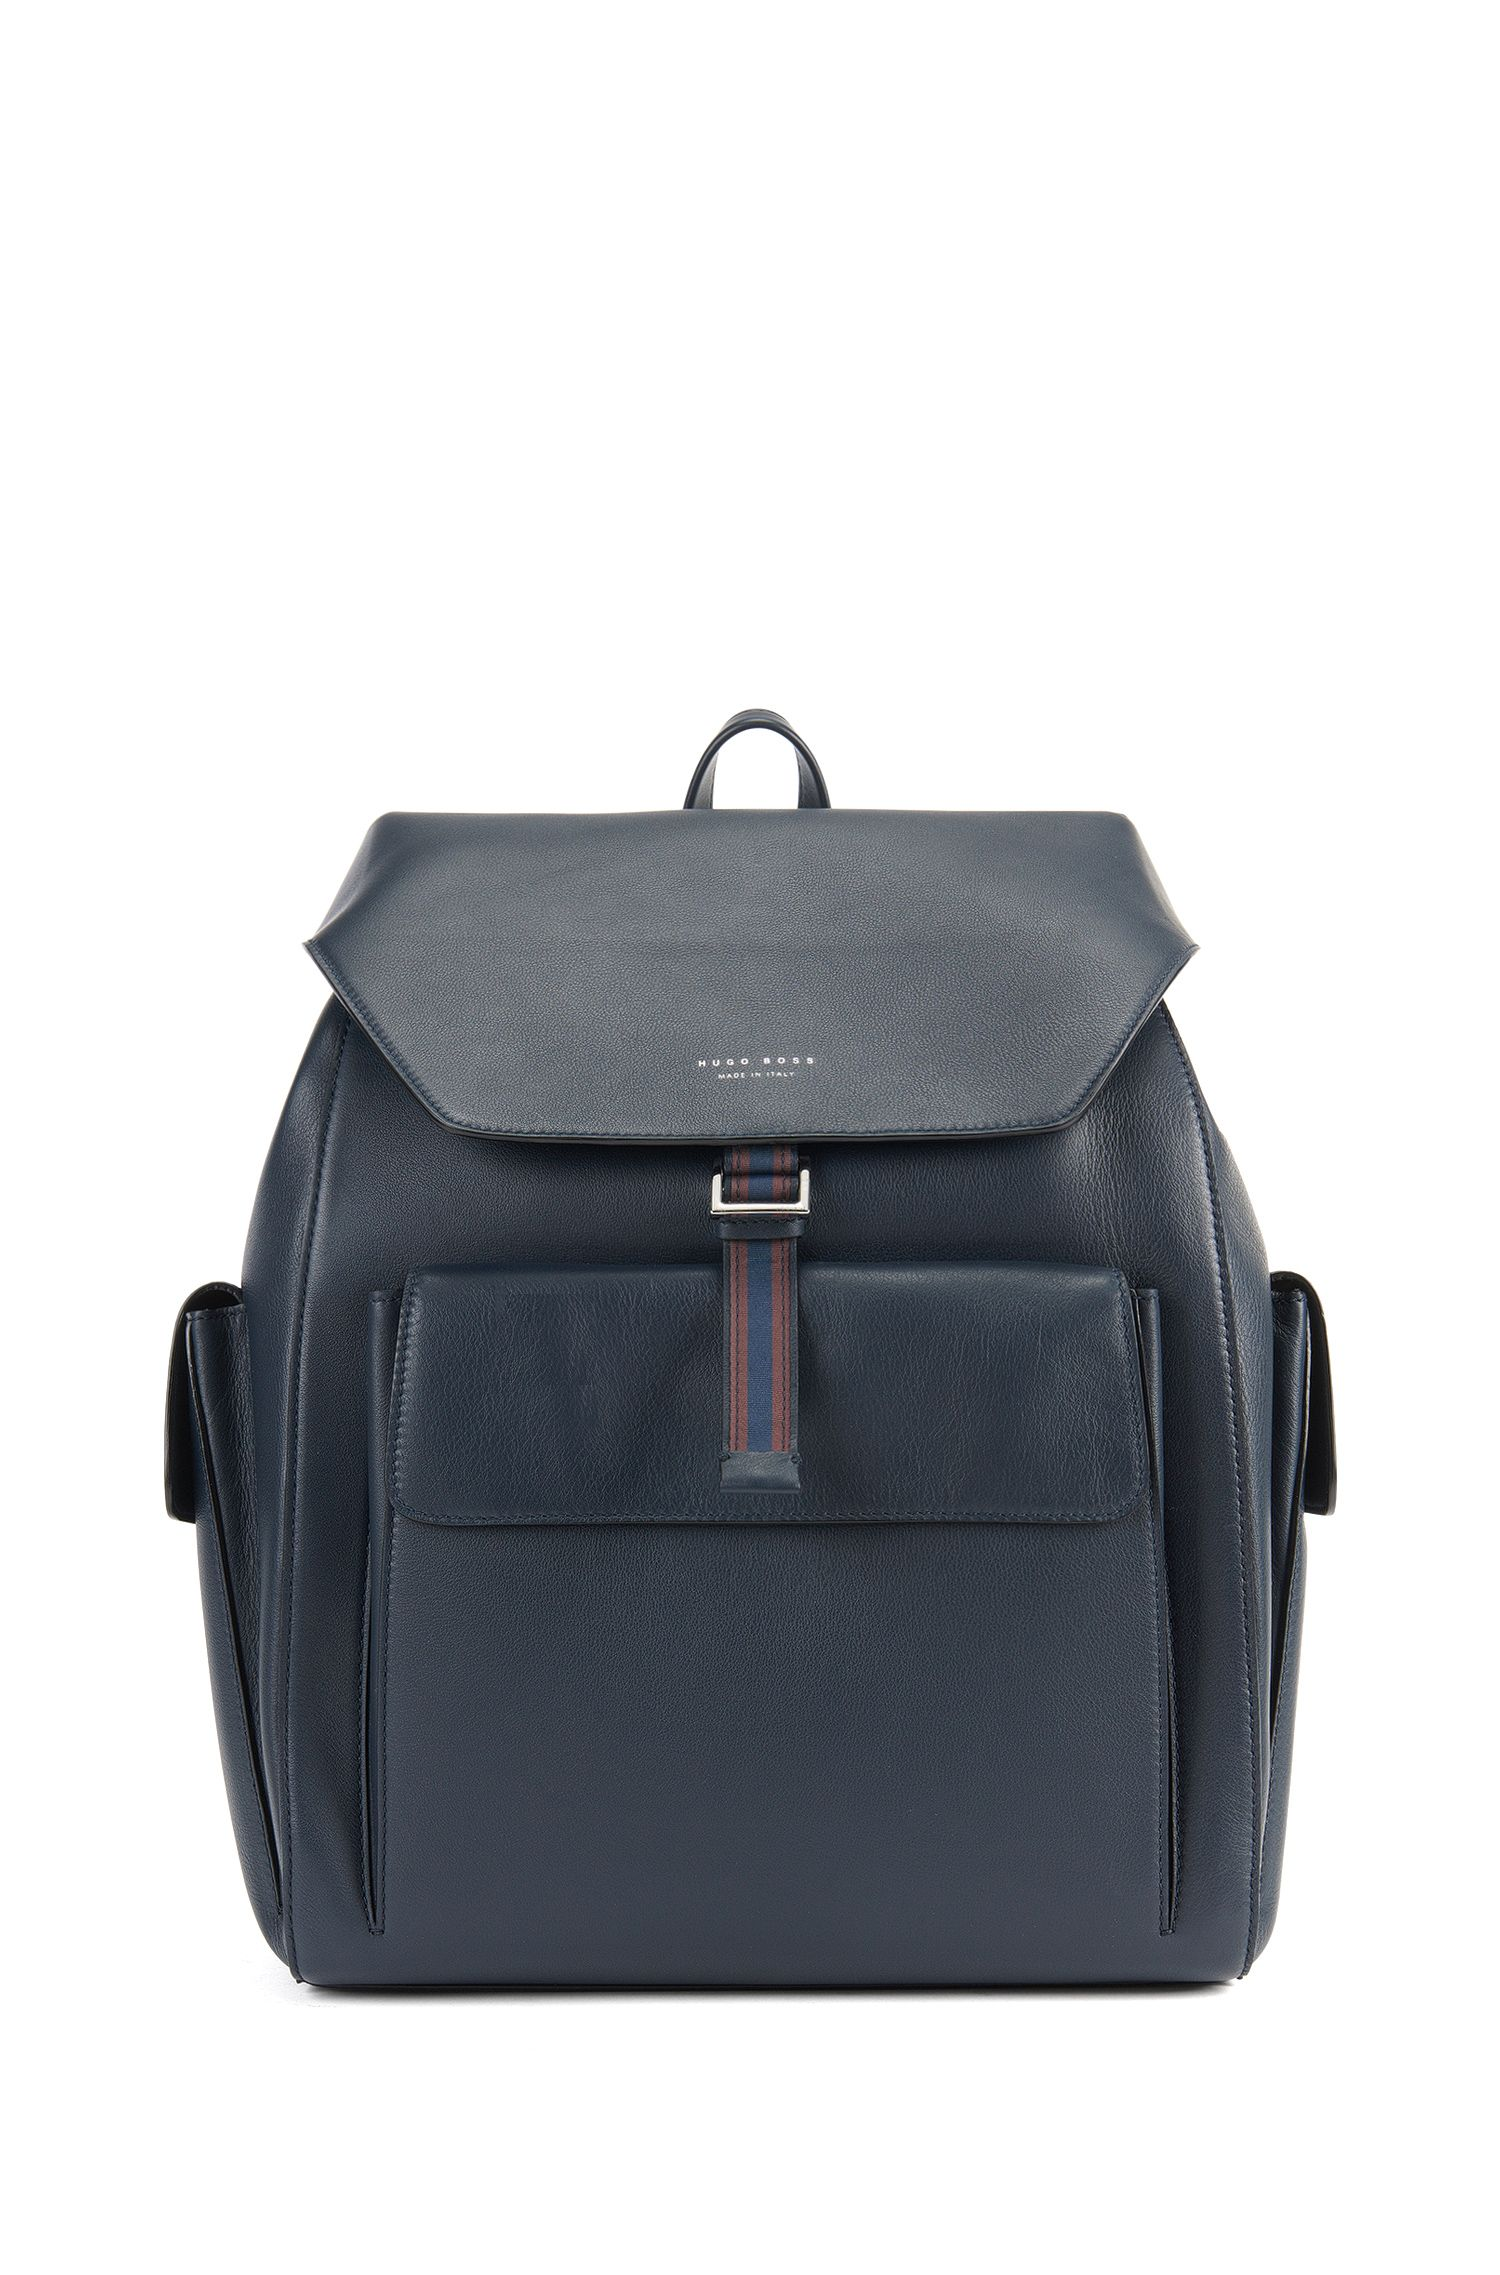 Structured backpack in Italian leather